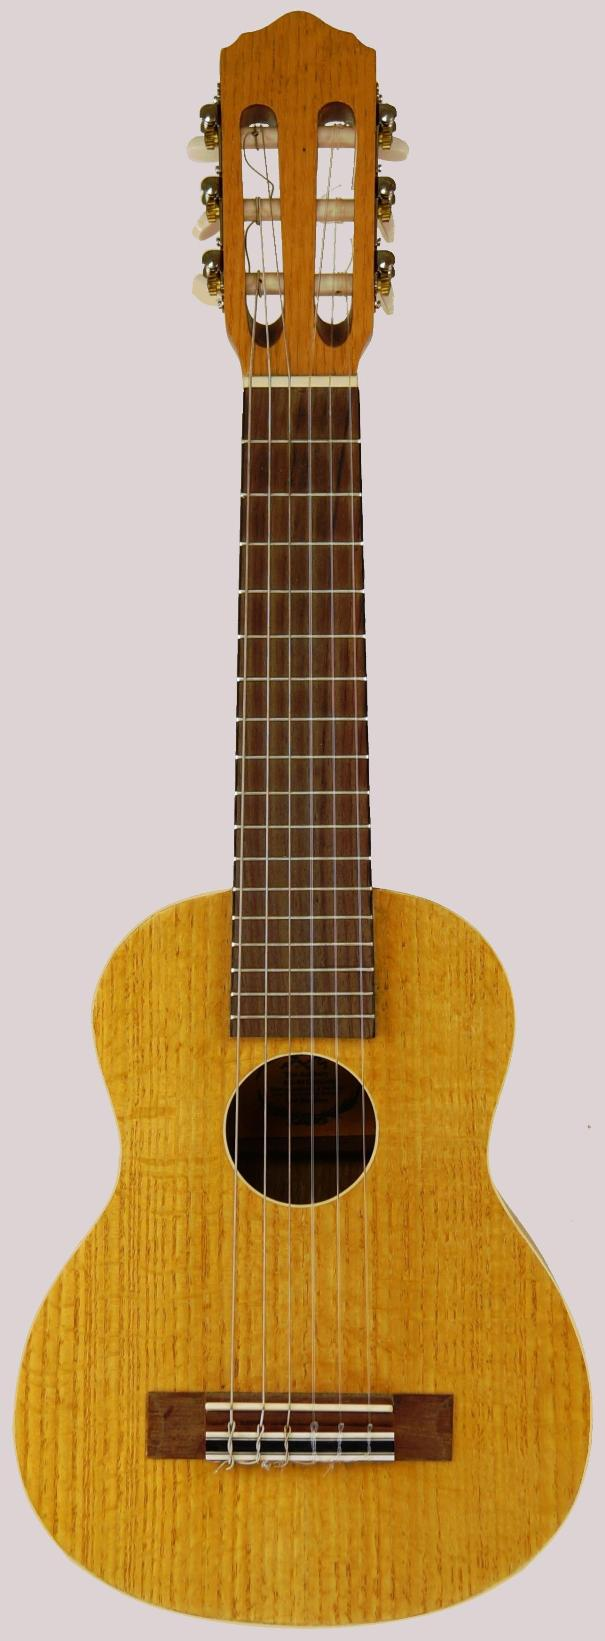 Ashbury AG-40 Guitalele Guitarlele mini guitar at Ukulele Corner